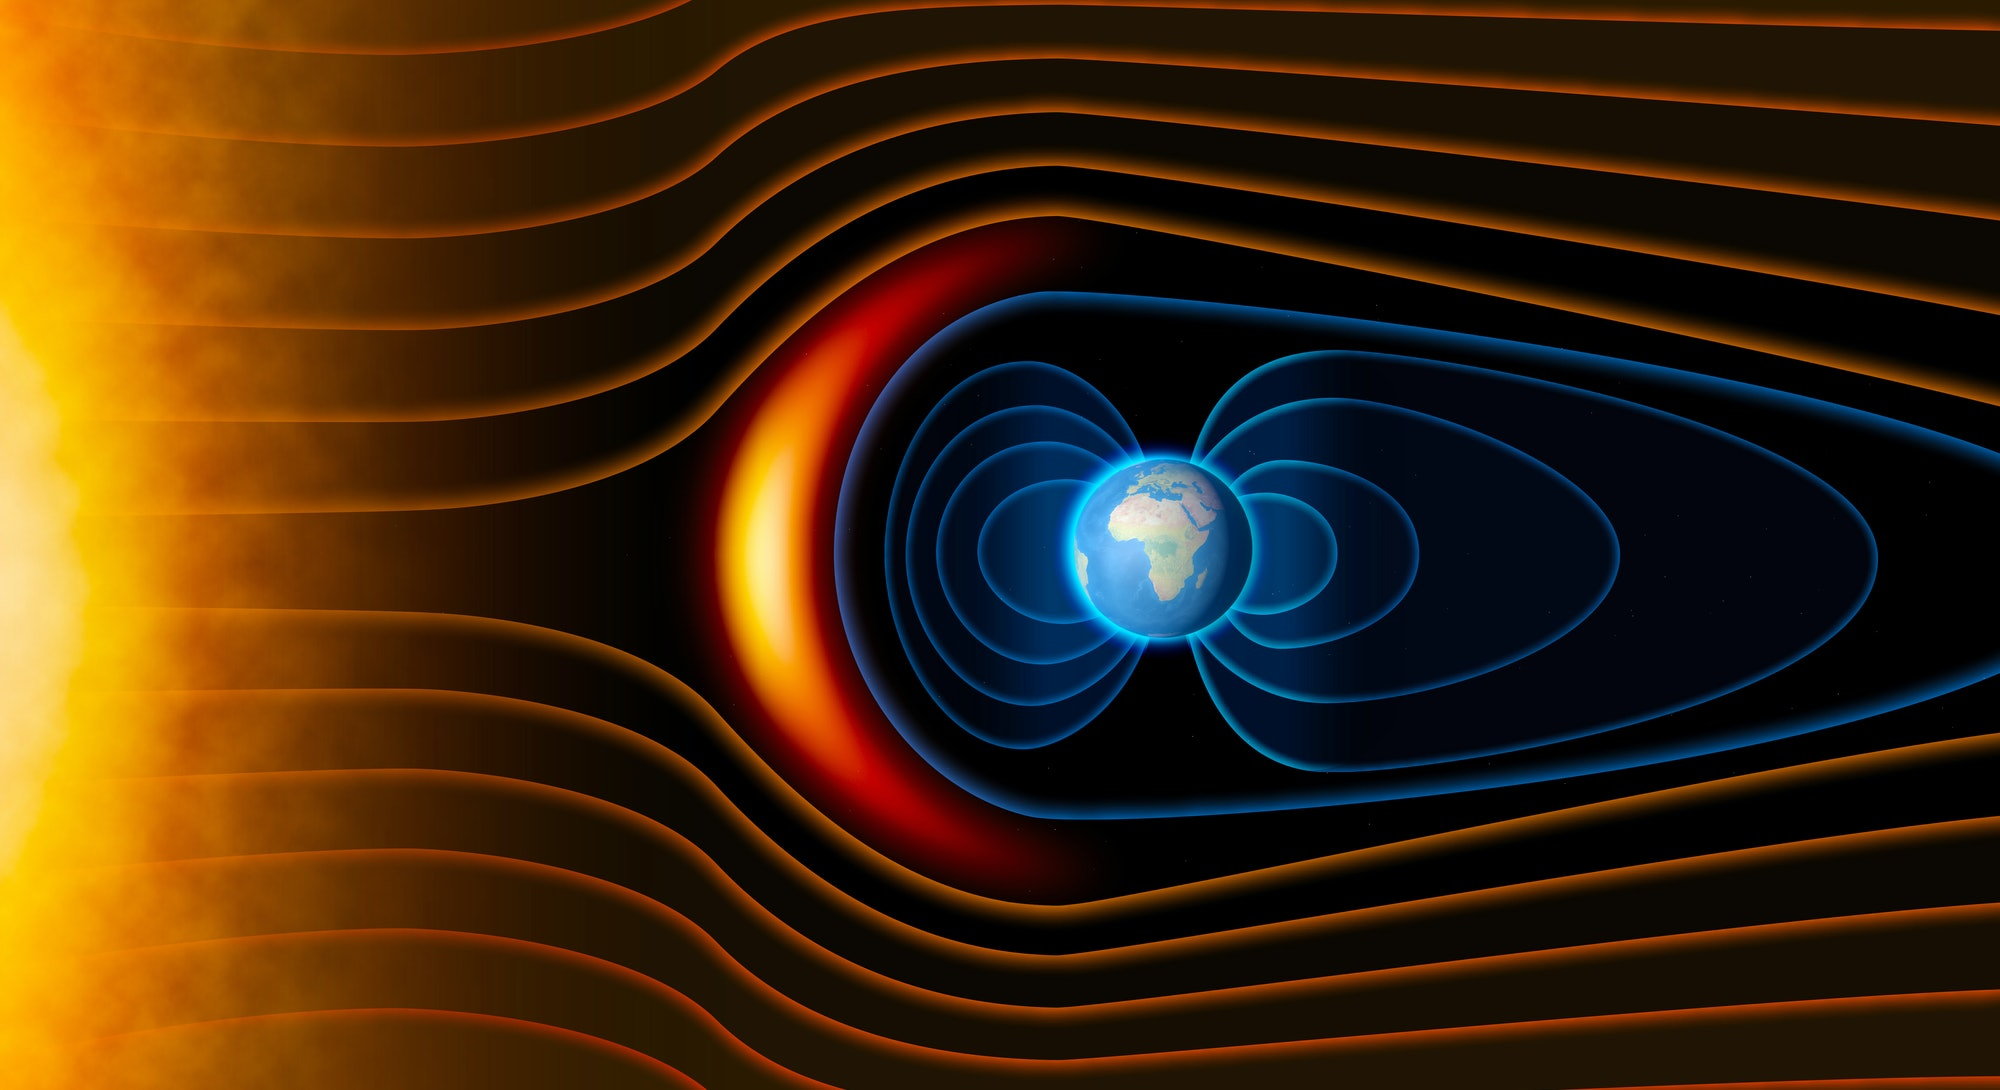 Earth's magnetic field, the Earth, the solar wind, the flow of particles. Sun. Element of this image...